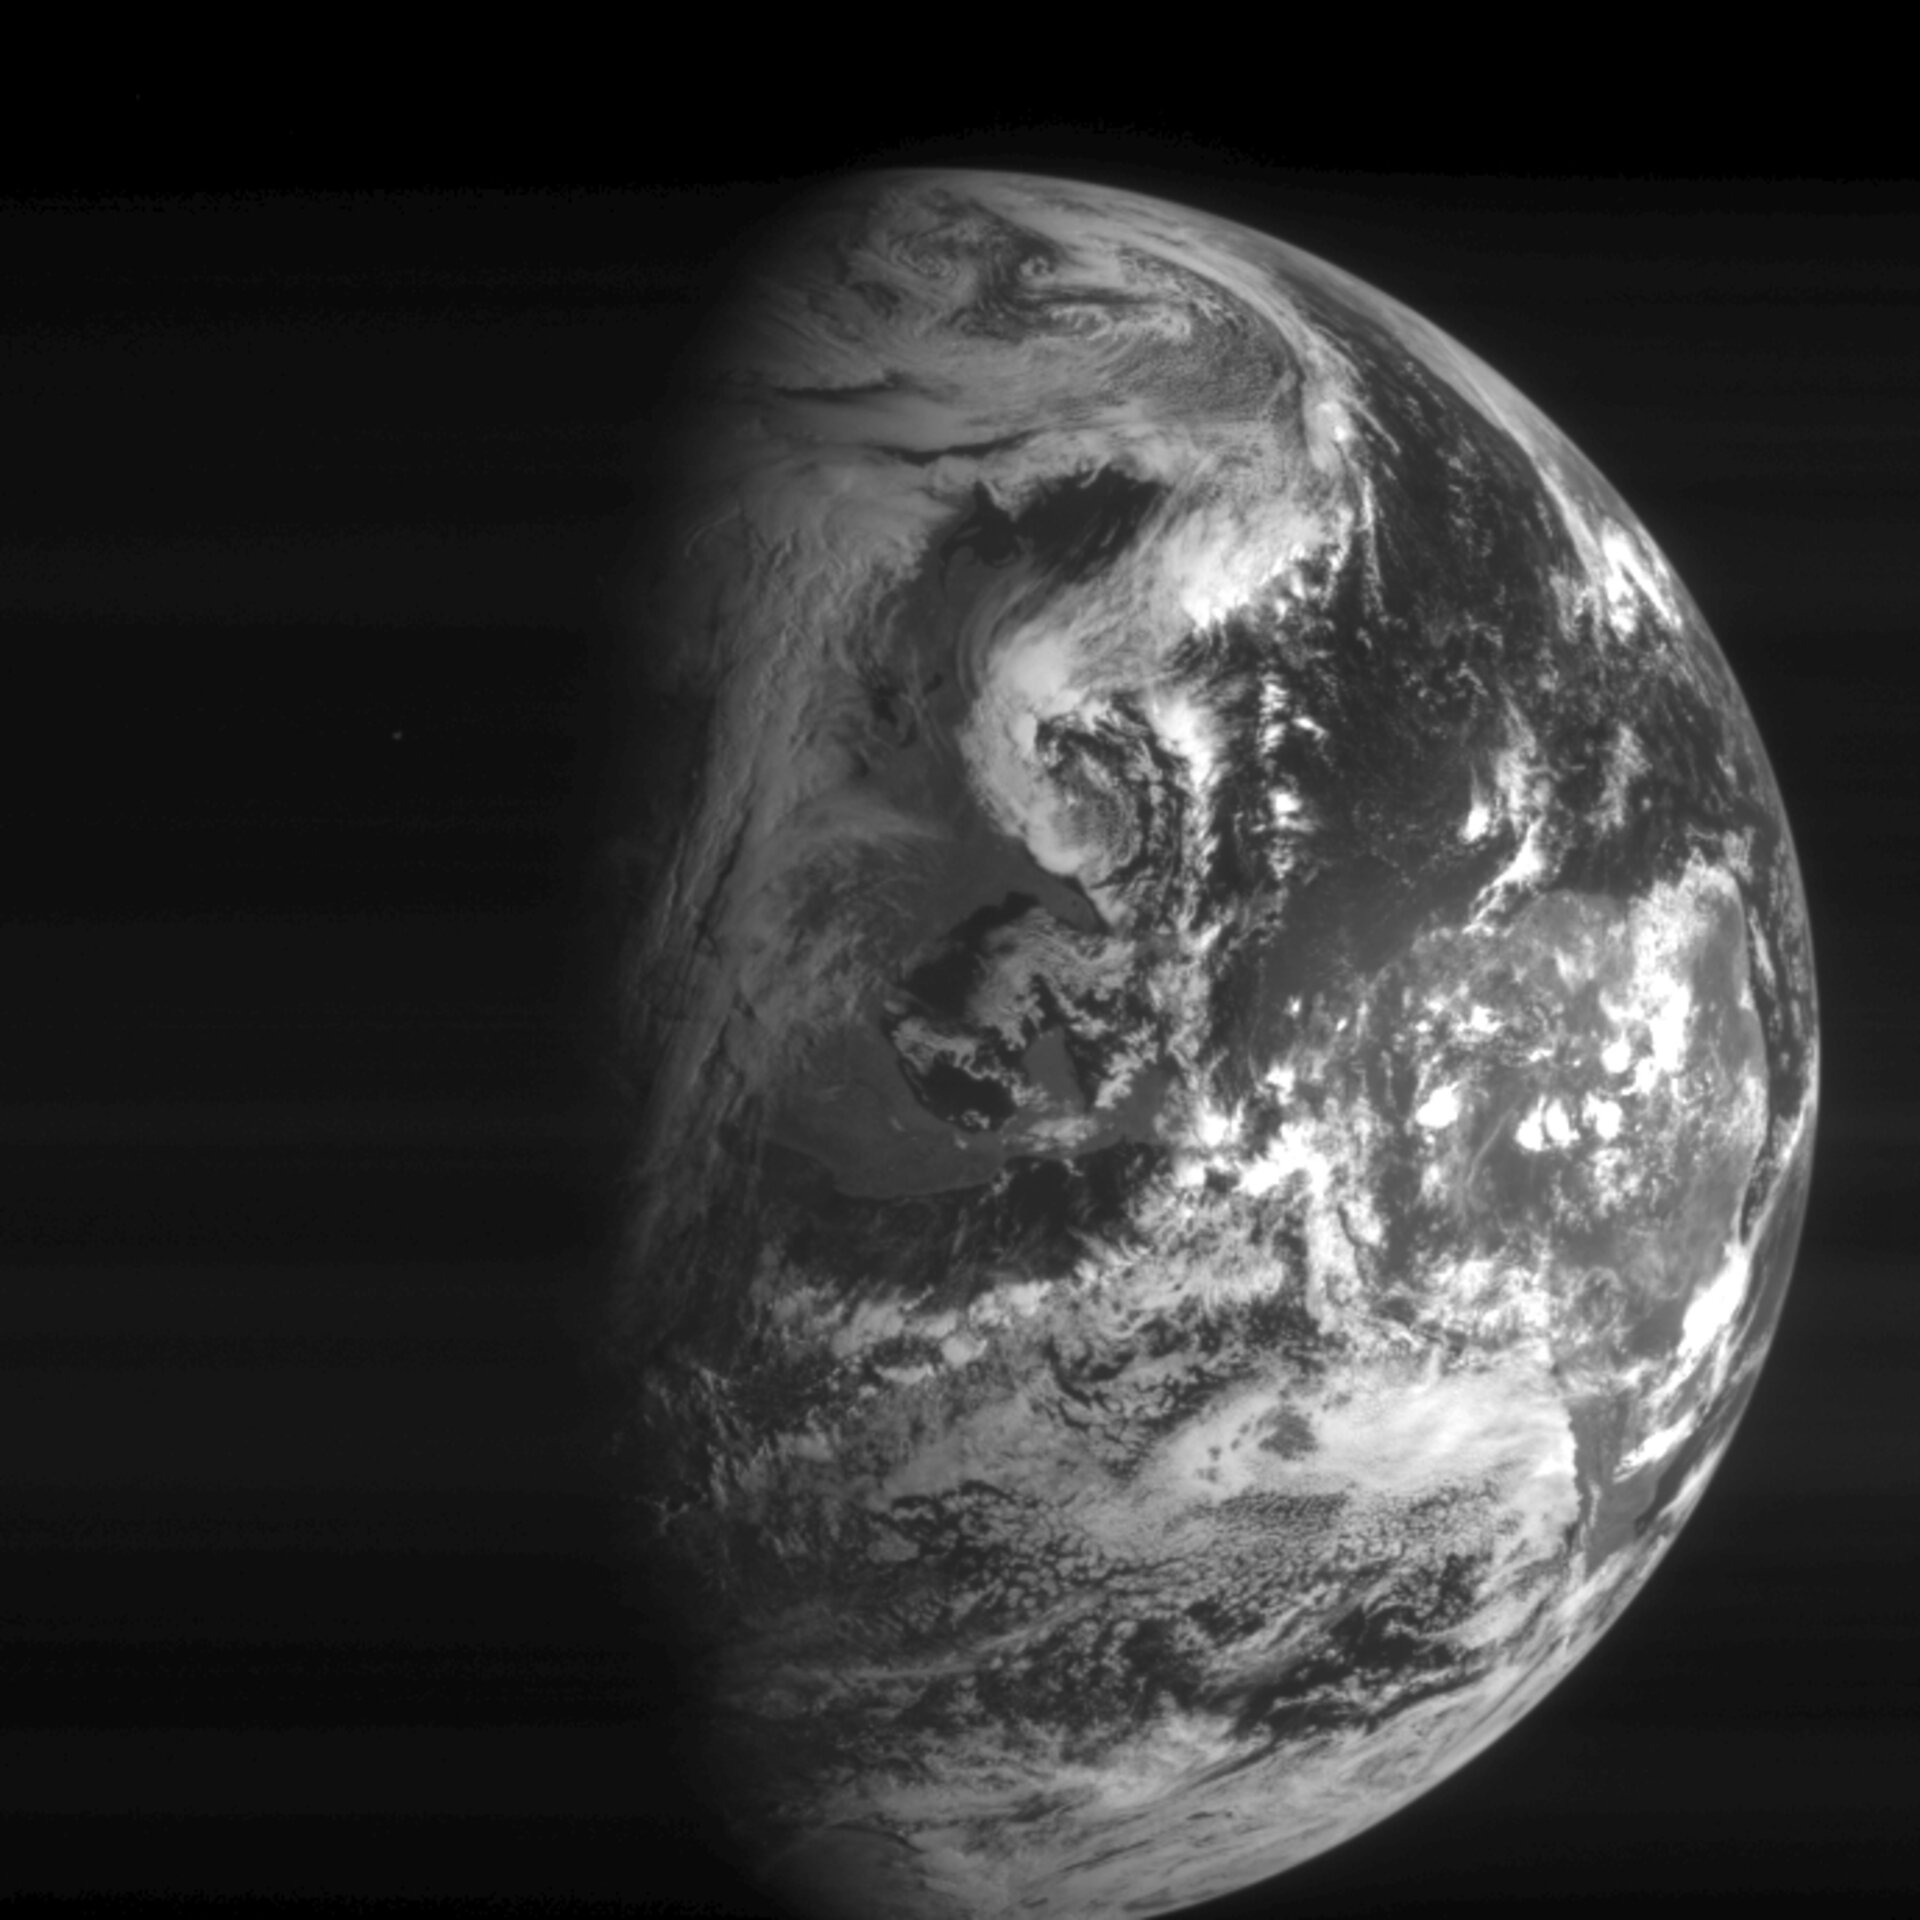 Rosetta navigation camera image of Earth